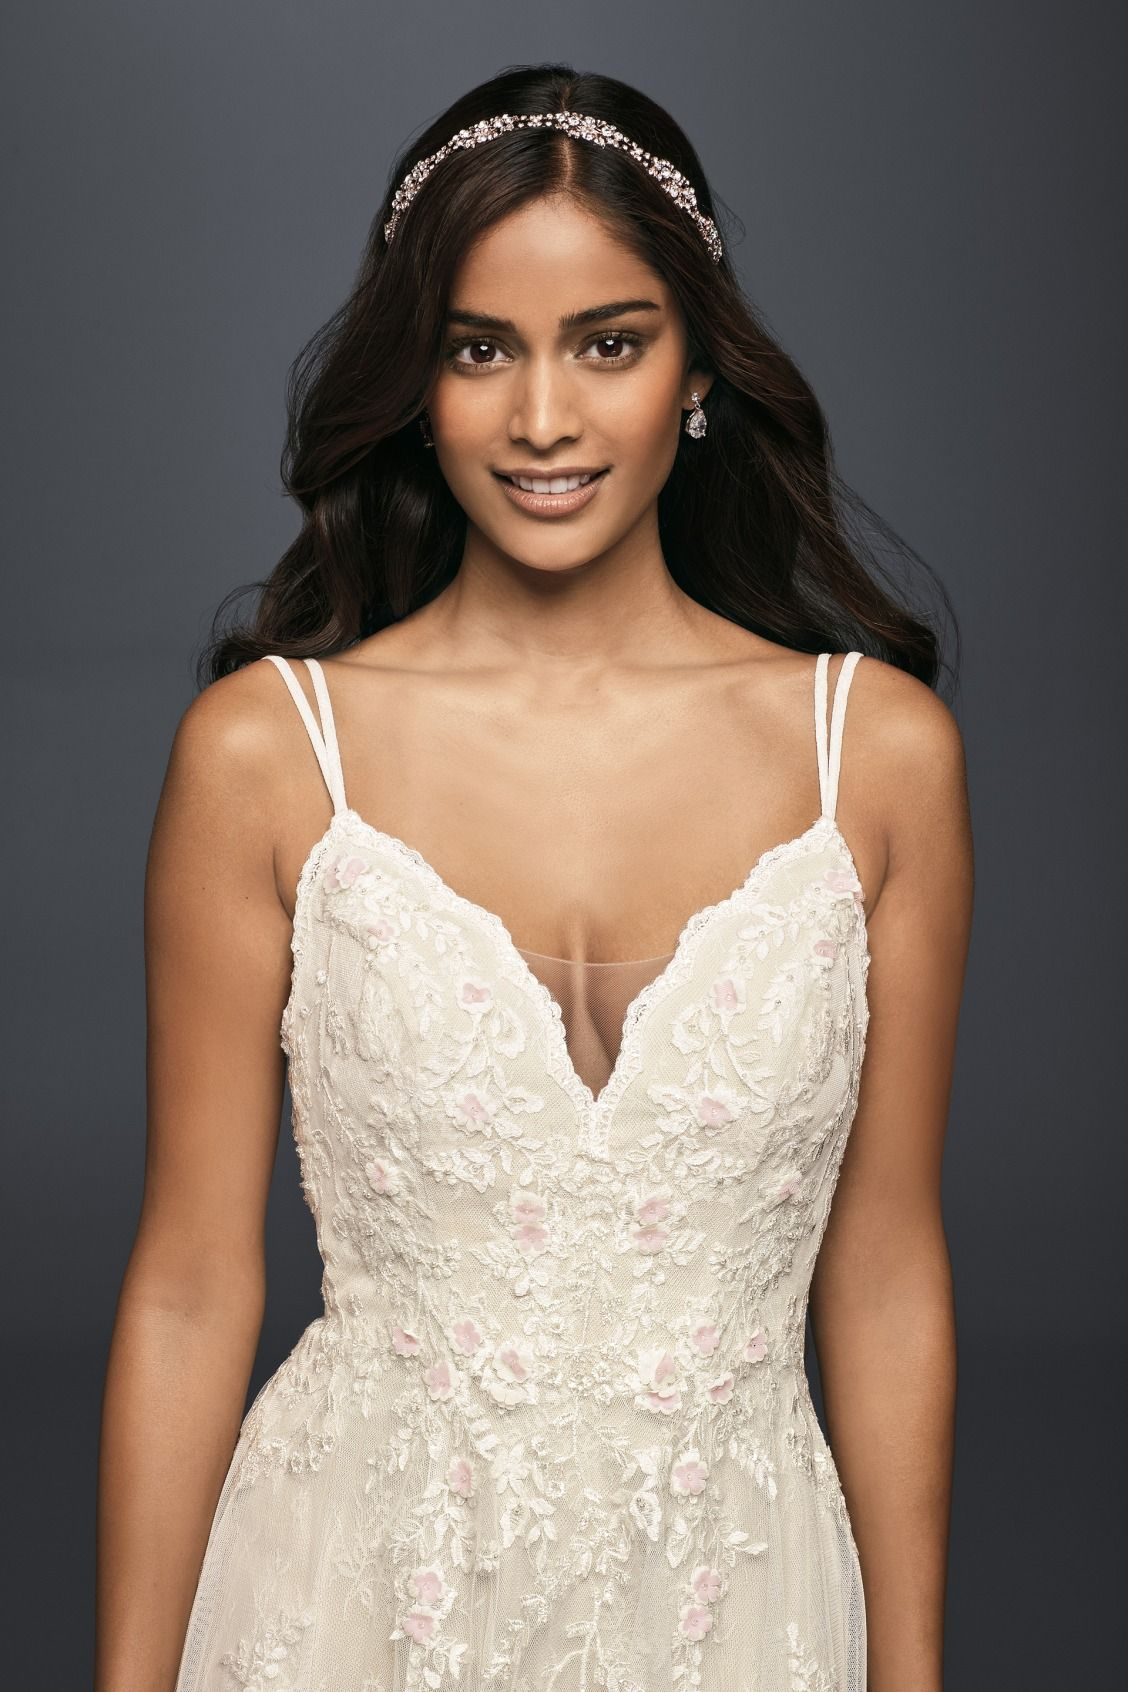 Scalloped A Line Wedding Dress With Double Straps David S Bridal Sweet Wedding Dresses Wedding Dresses Trendy Wedding Dresses [ 1692 x 1128 Pixel ]